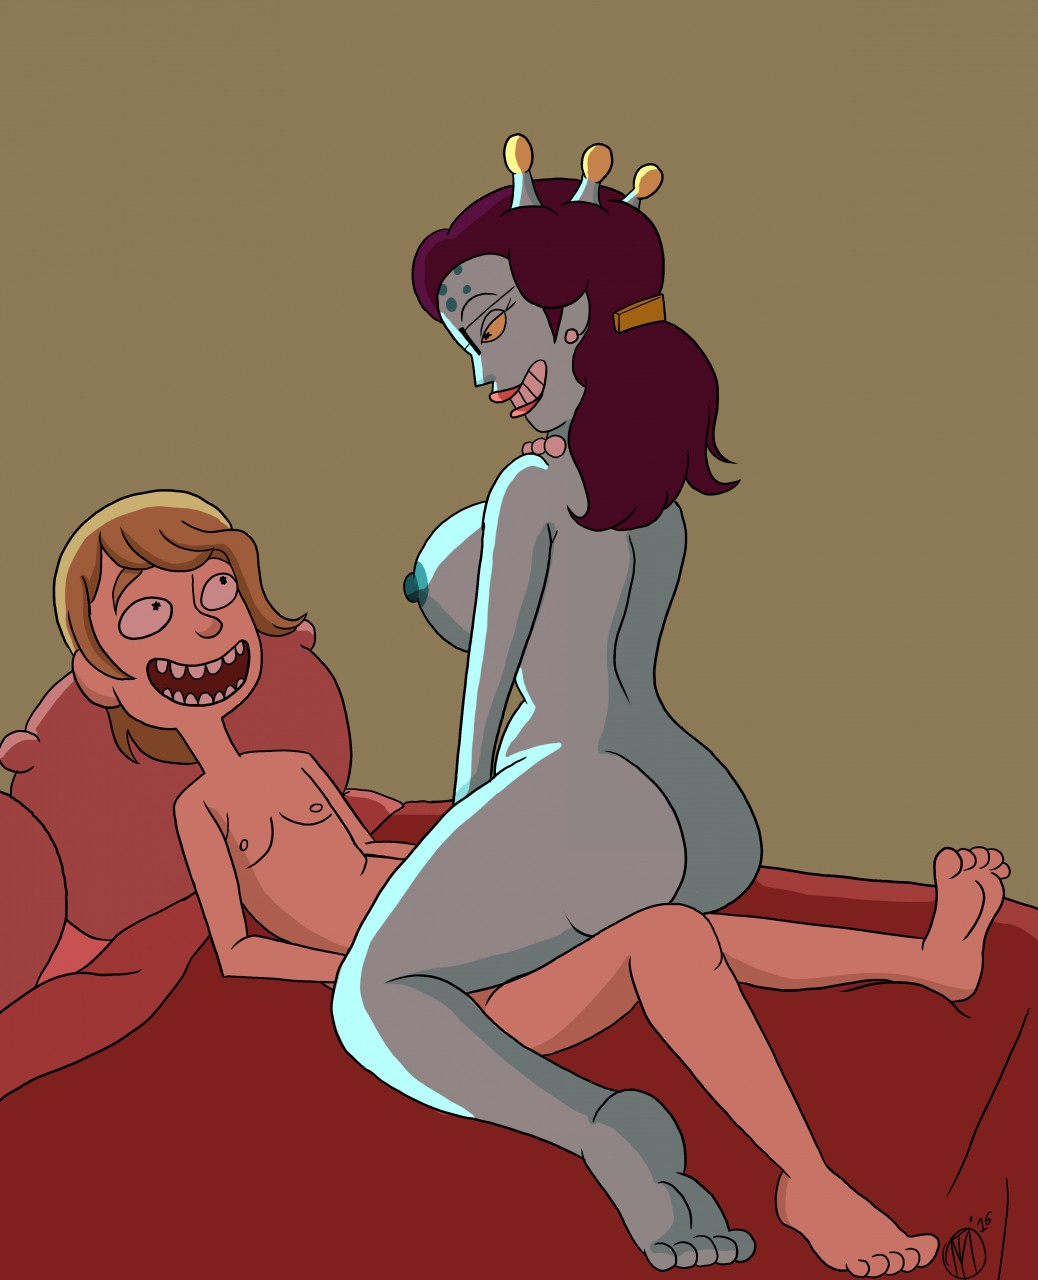 and morty summer naked rick from Padme amidala and anakin skywalker age differences